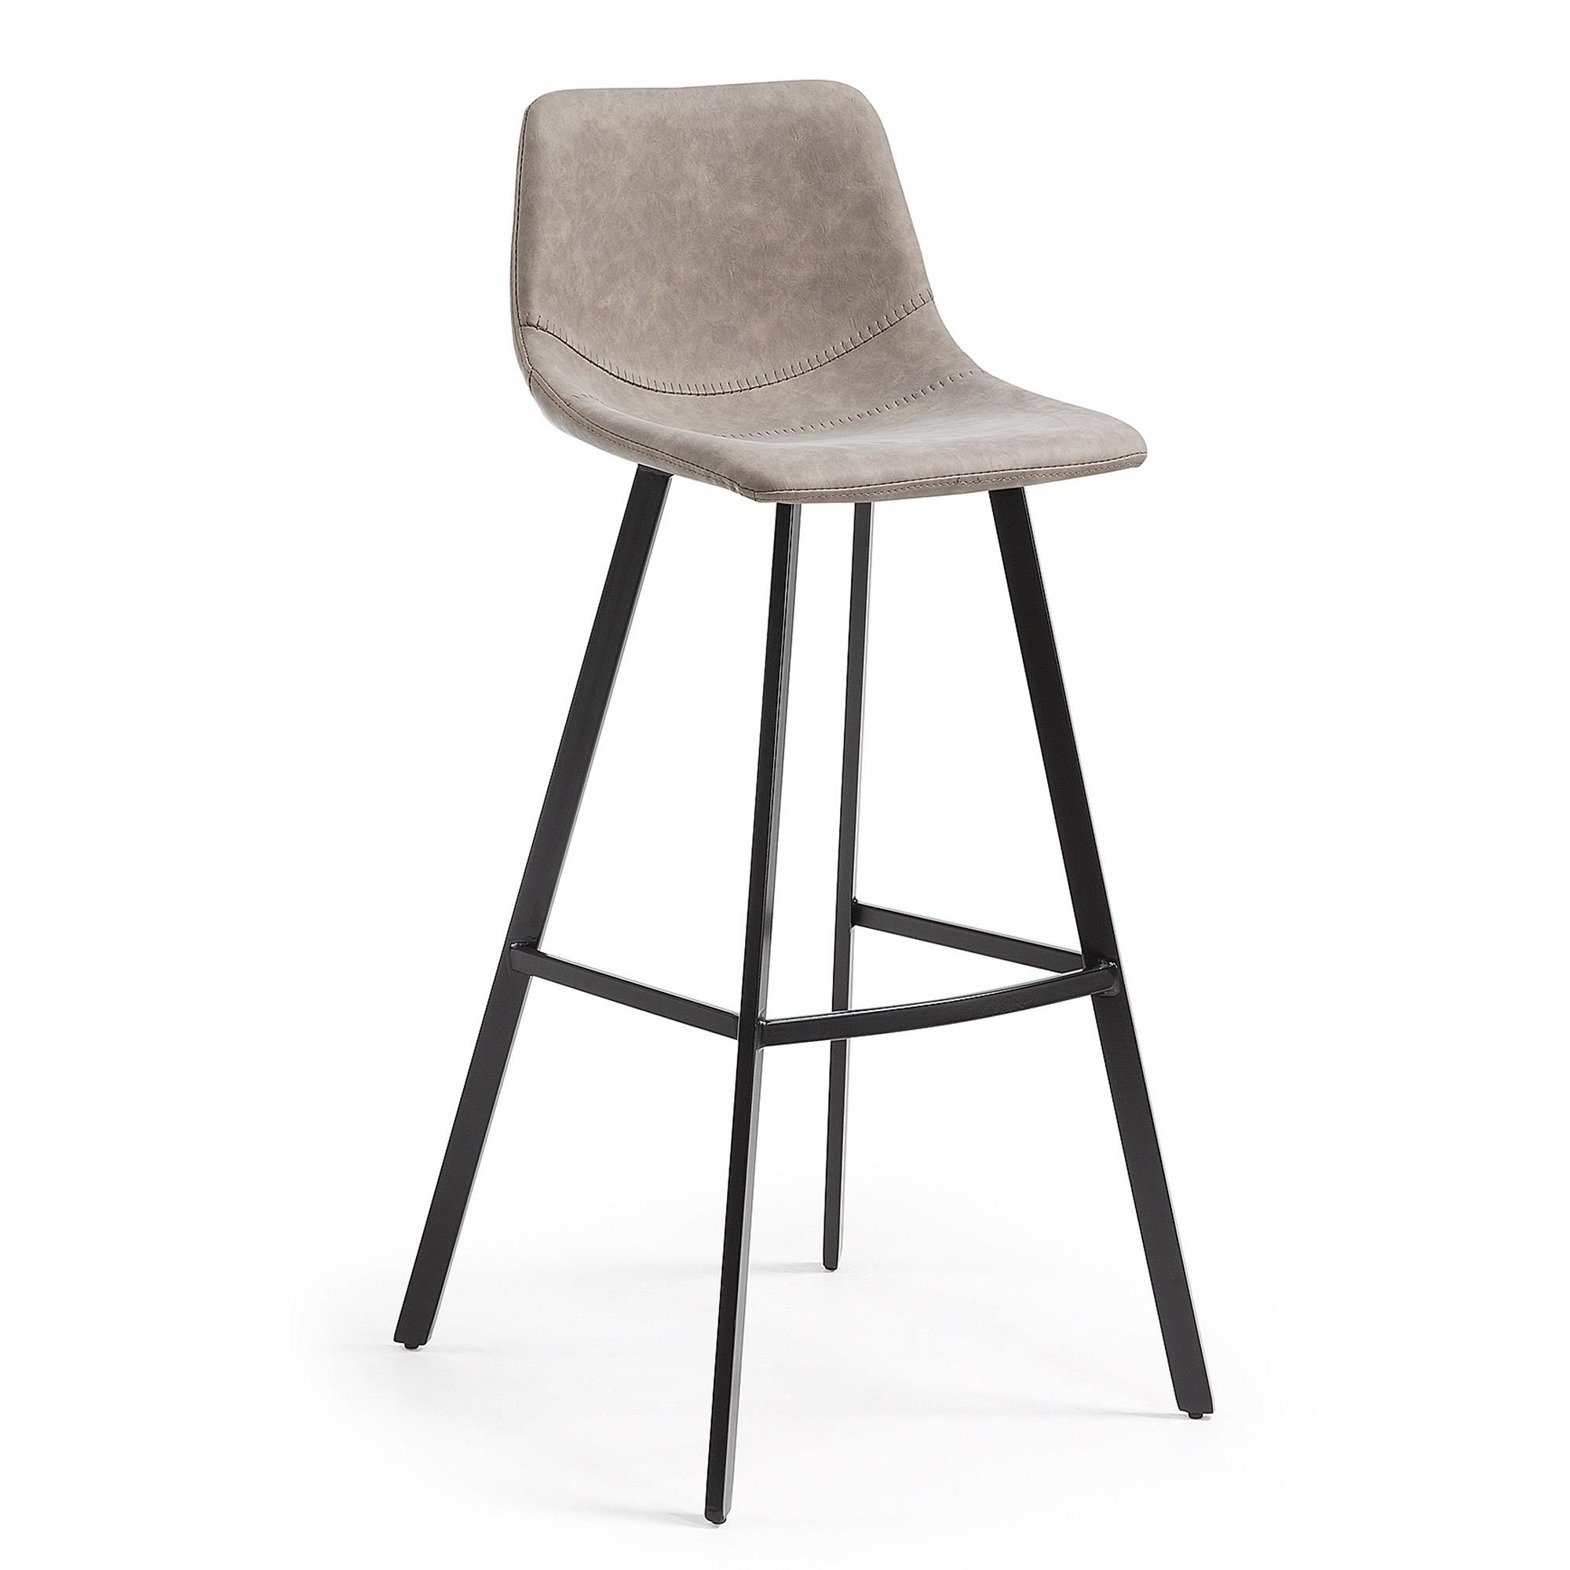 ANDREWS Barstool metal black PU taupe